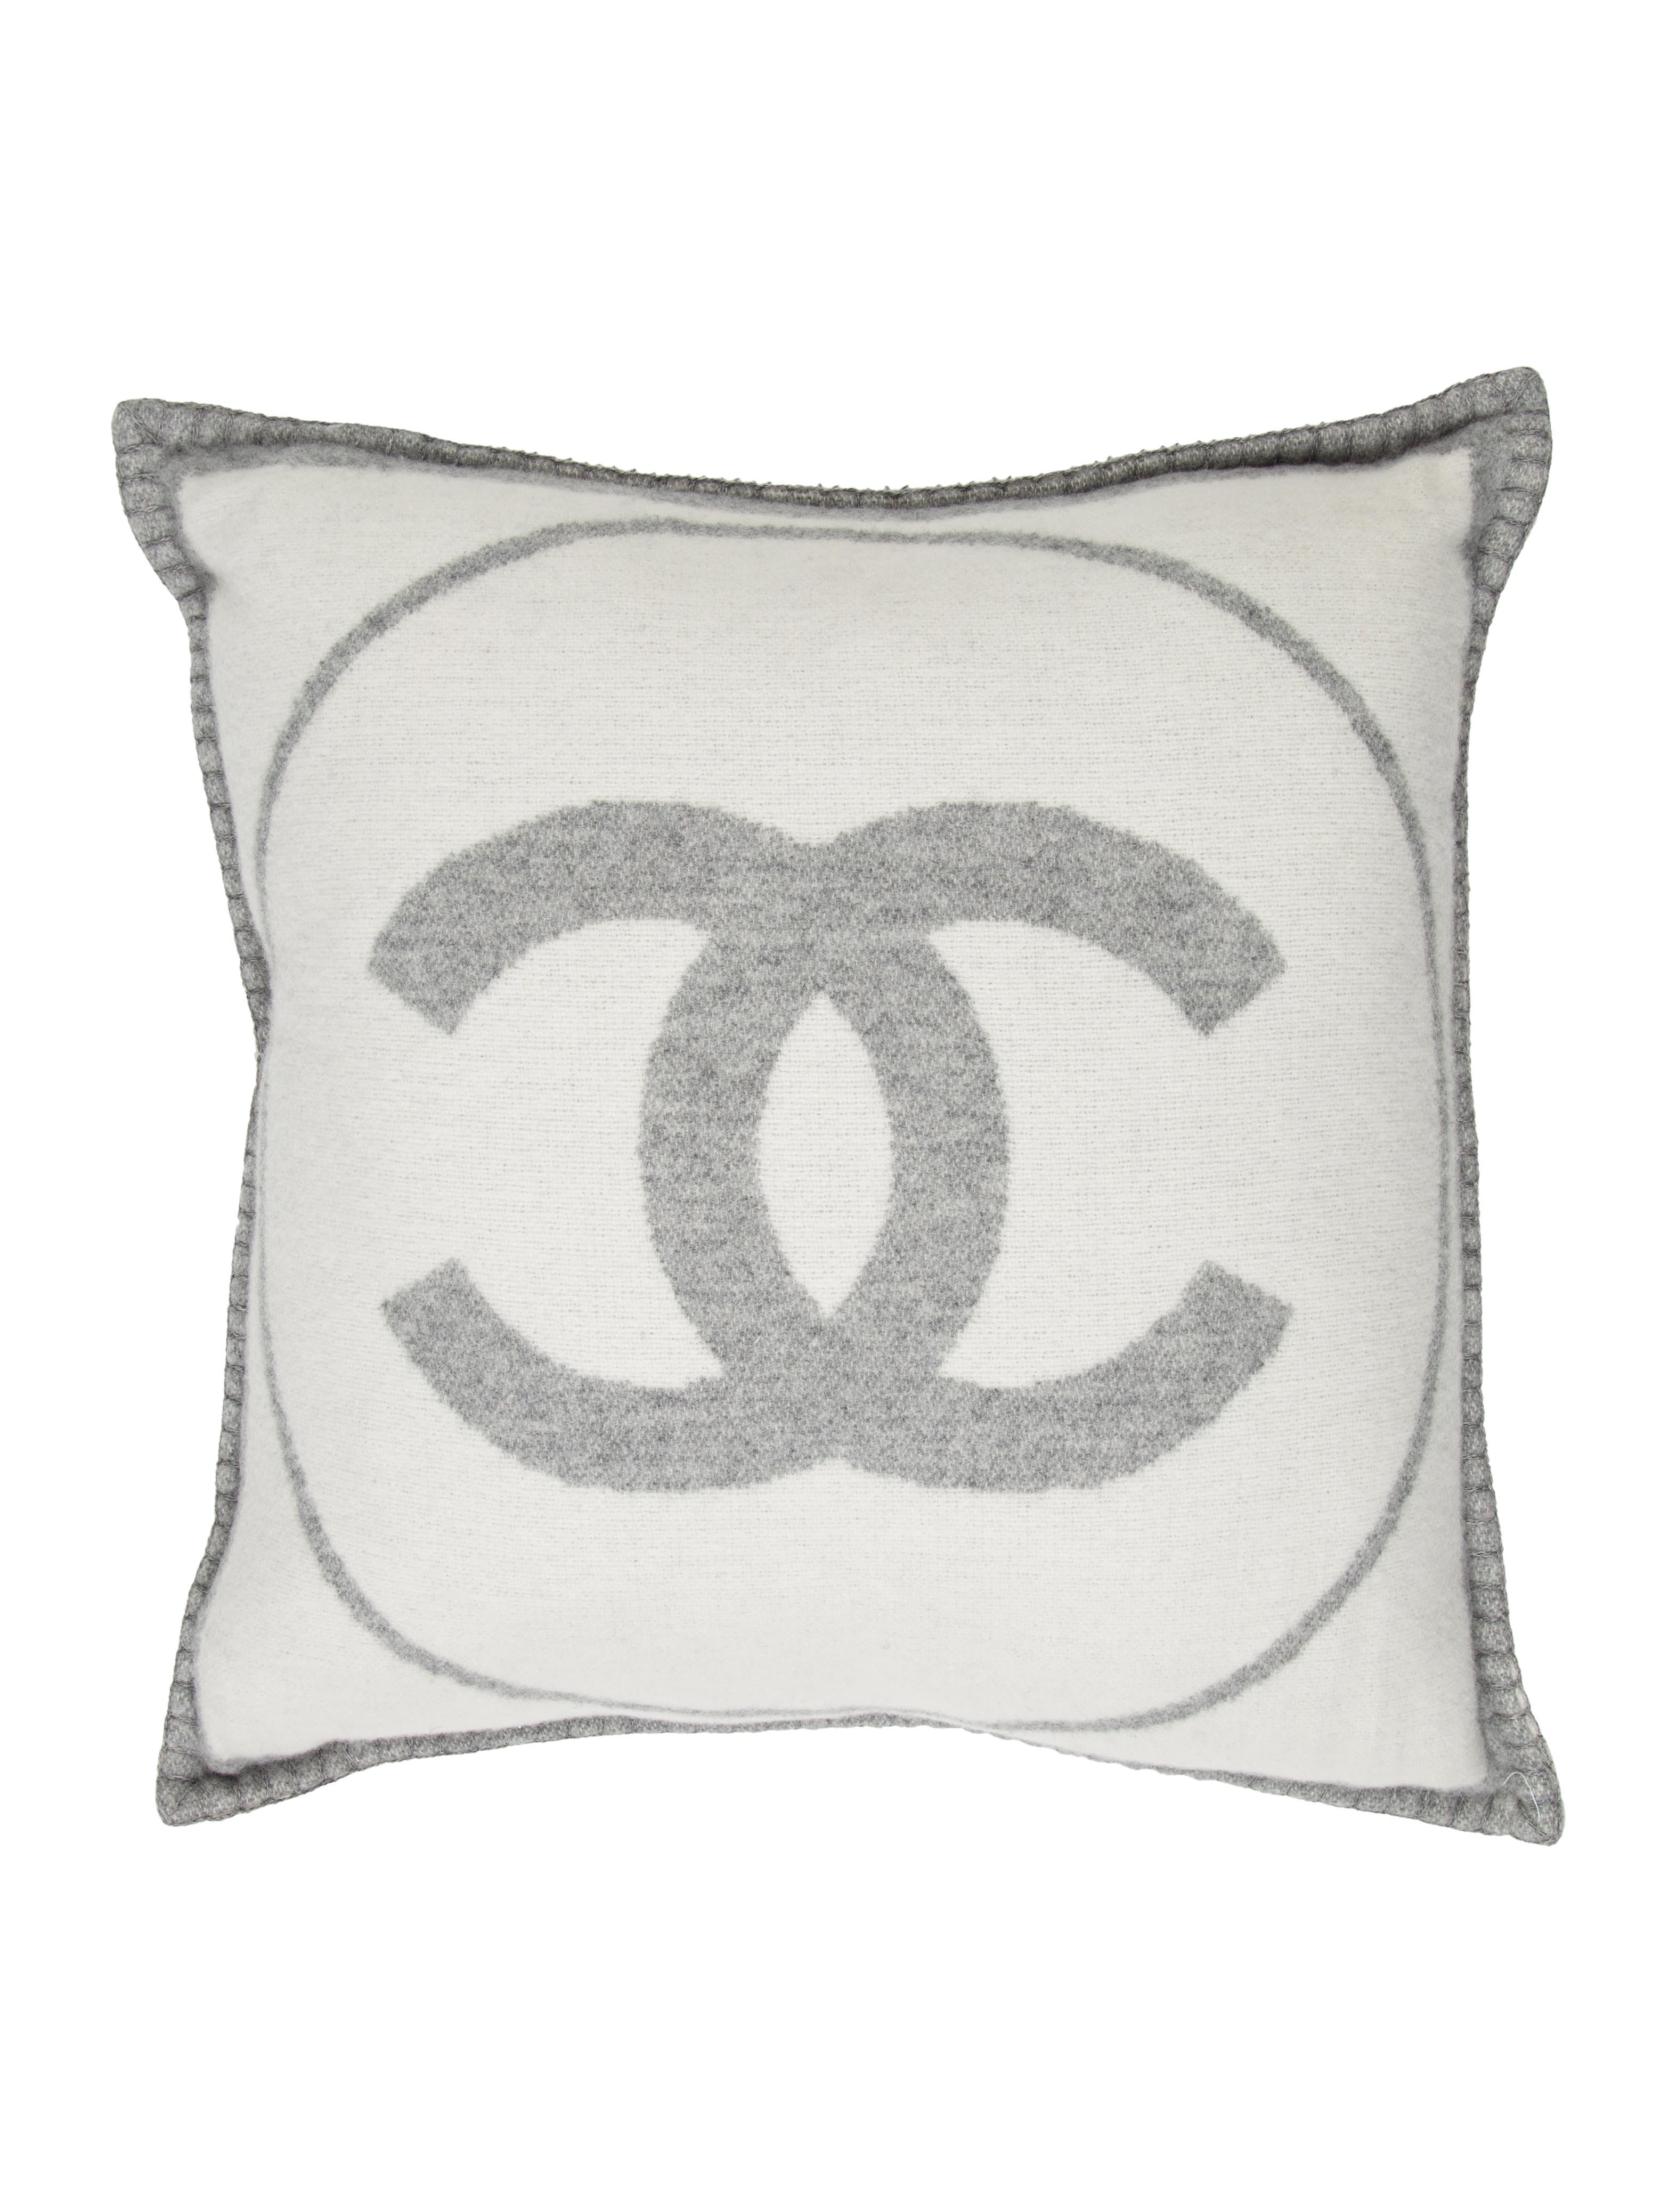 Black Chanel Throw Pillow : Chanel CC Throw Pillow - Pillows And Throws - CHA180332 The RealReal